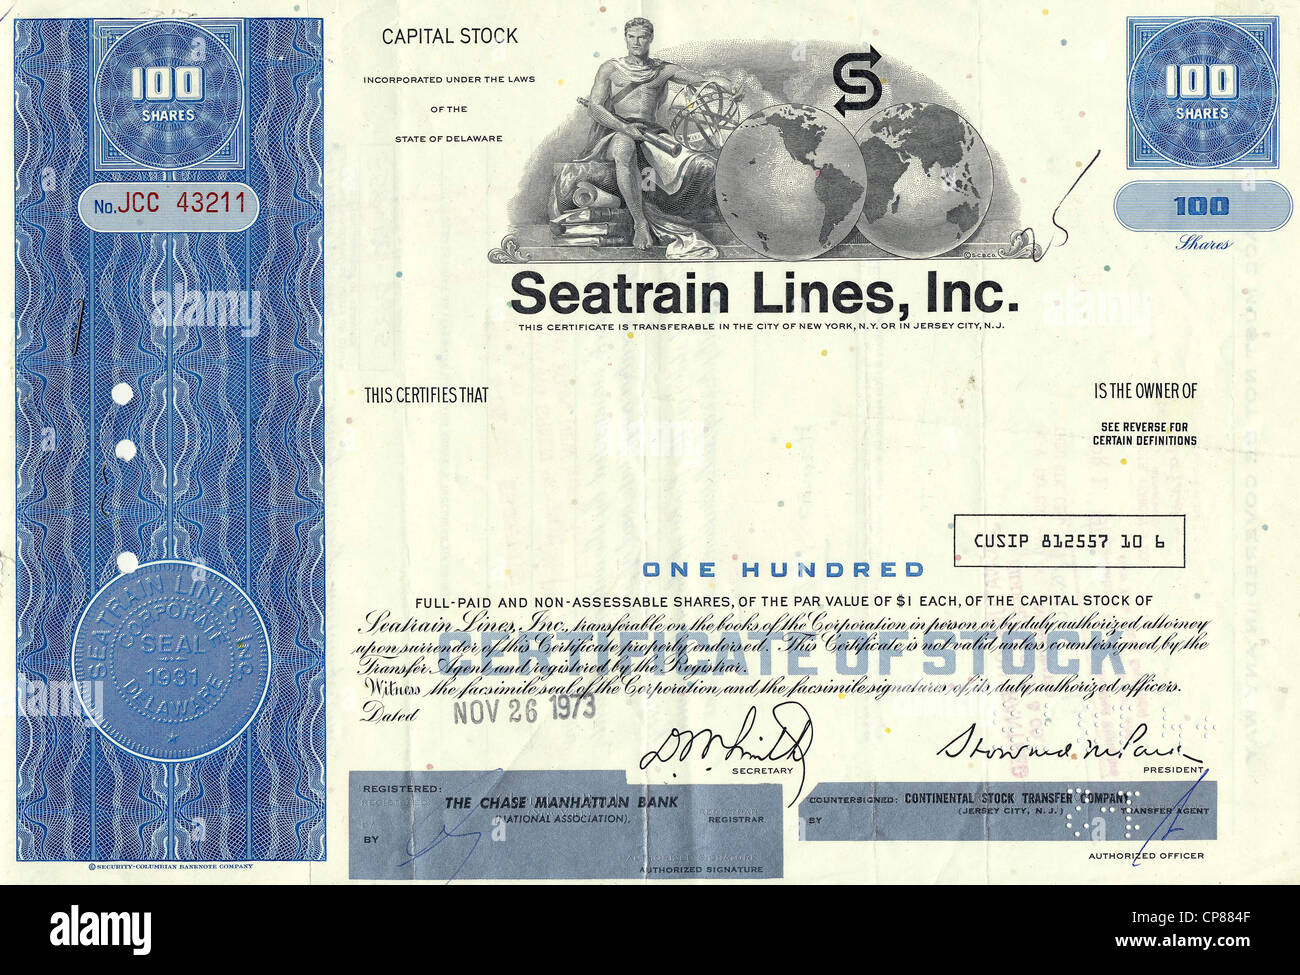 Historical stock certificate, American shipping company, trans-Atlantic container transport service, transportation - Stock Image